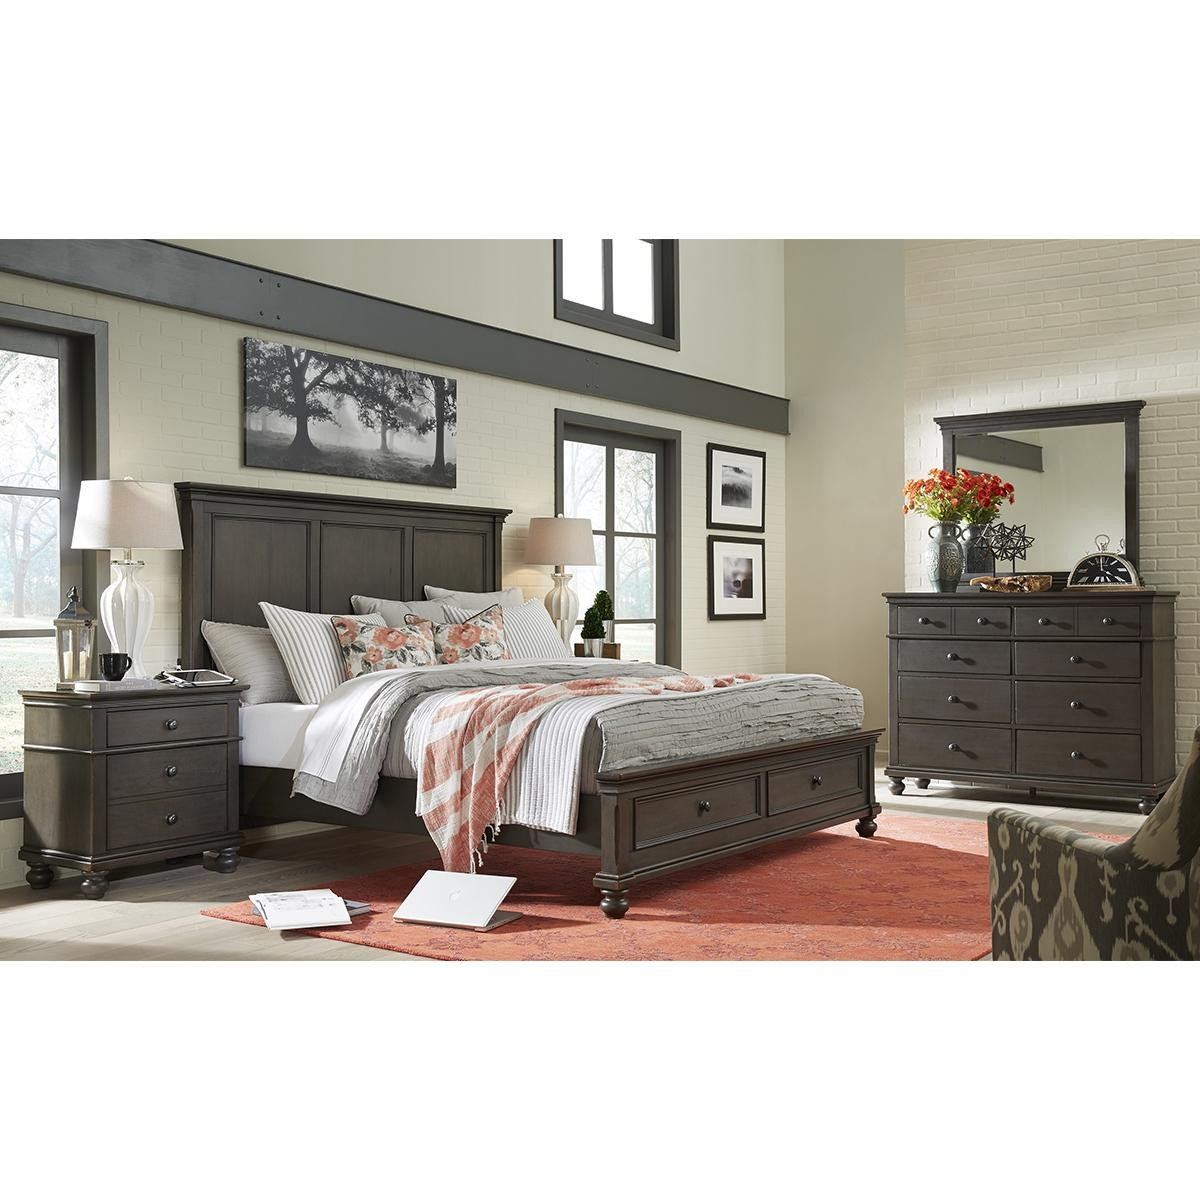 King Bedroom Comforter Set Unique Riva Ridge Oxford 4 Piece King Bedroom Set In Peppercorn